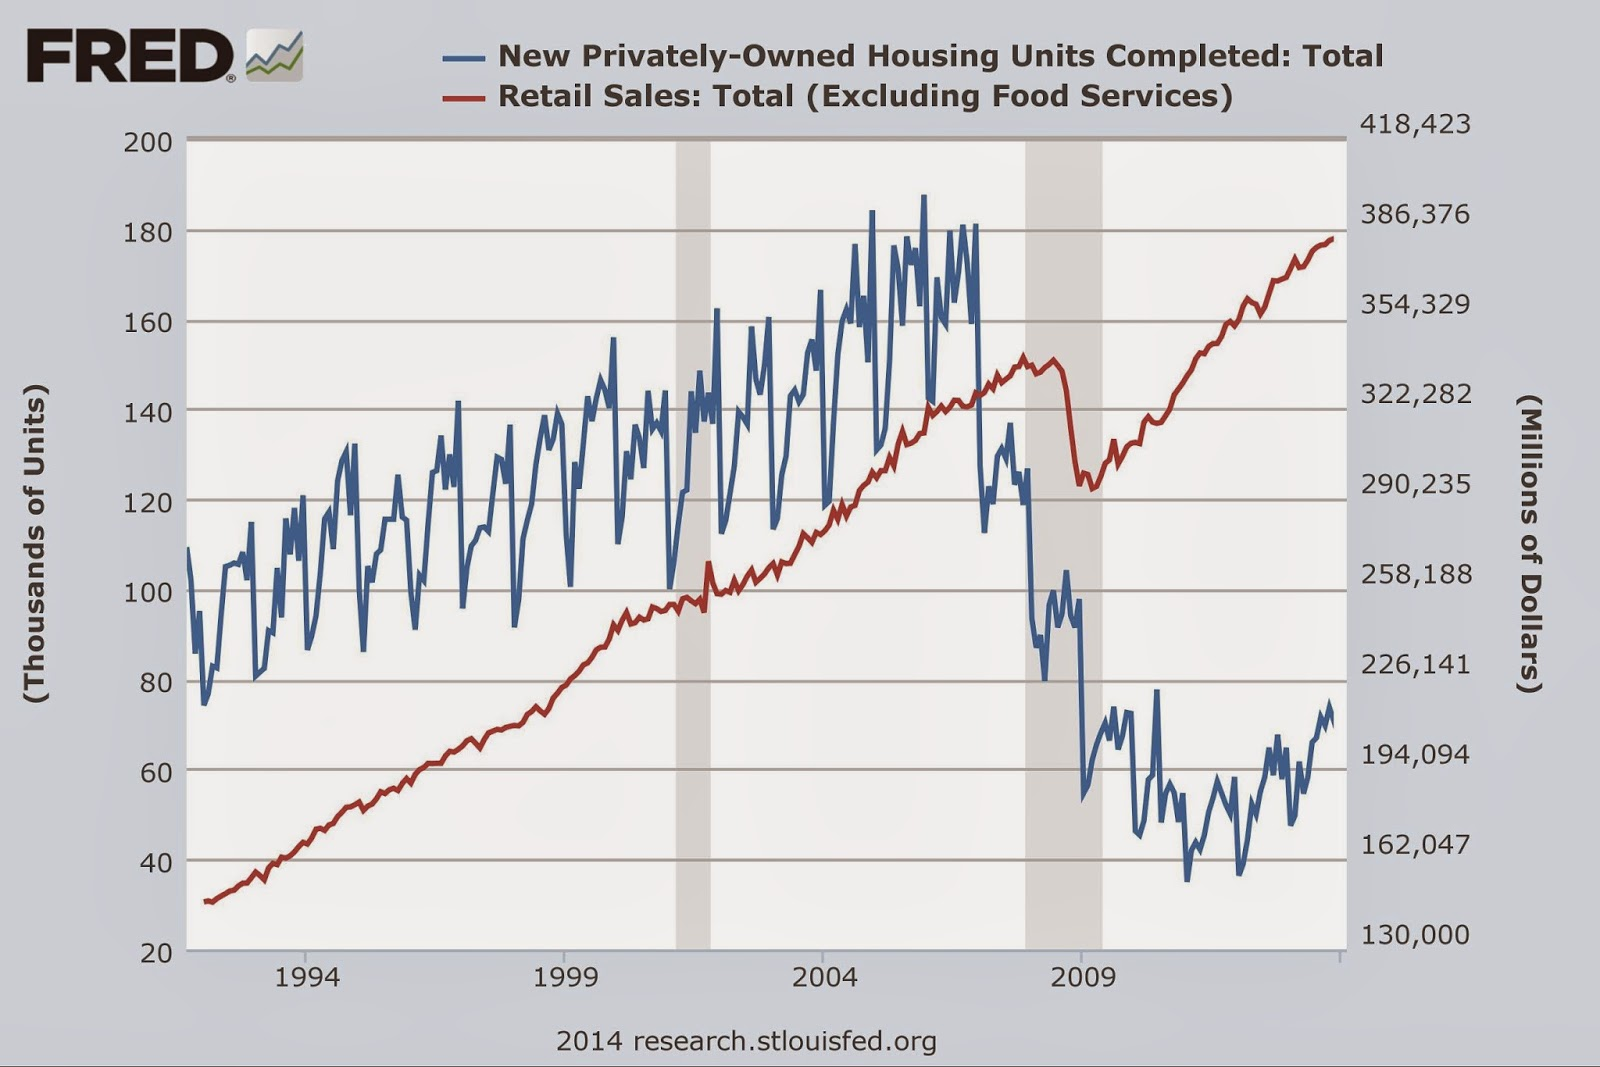 Chart of New Privately-Owned Housing Units Completed: Total and Retail Sales: Total (Excluding Food Services)